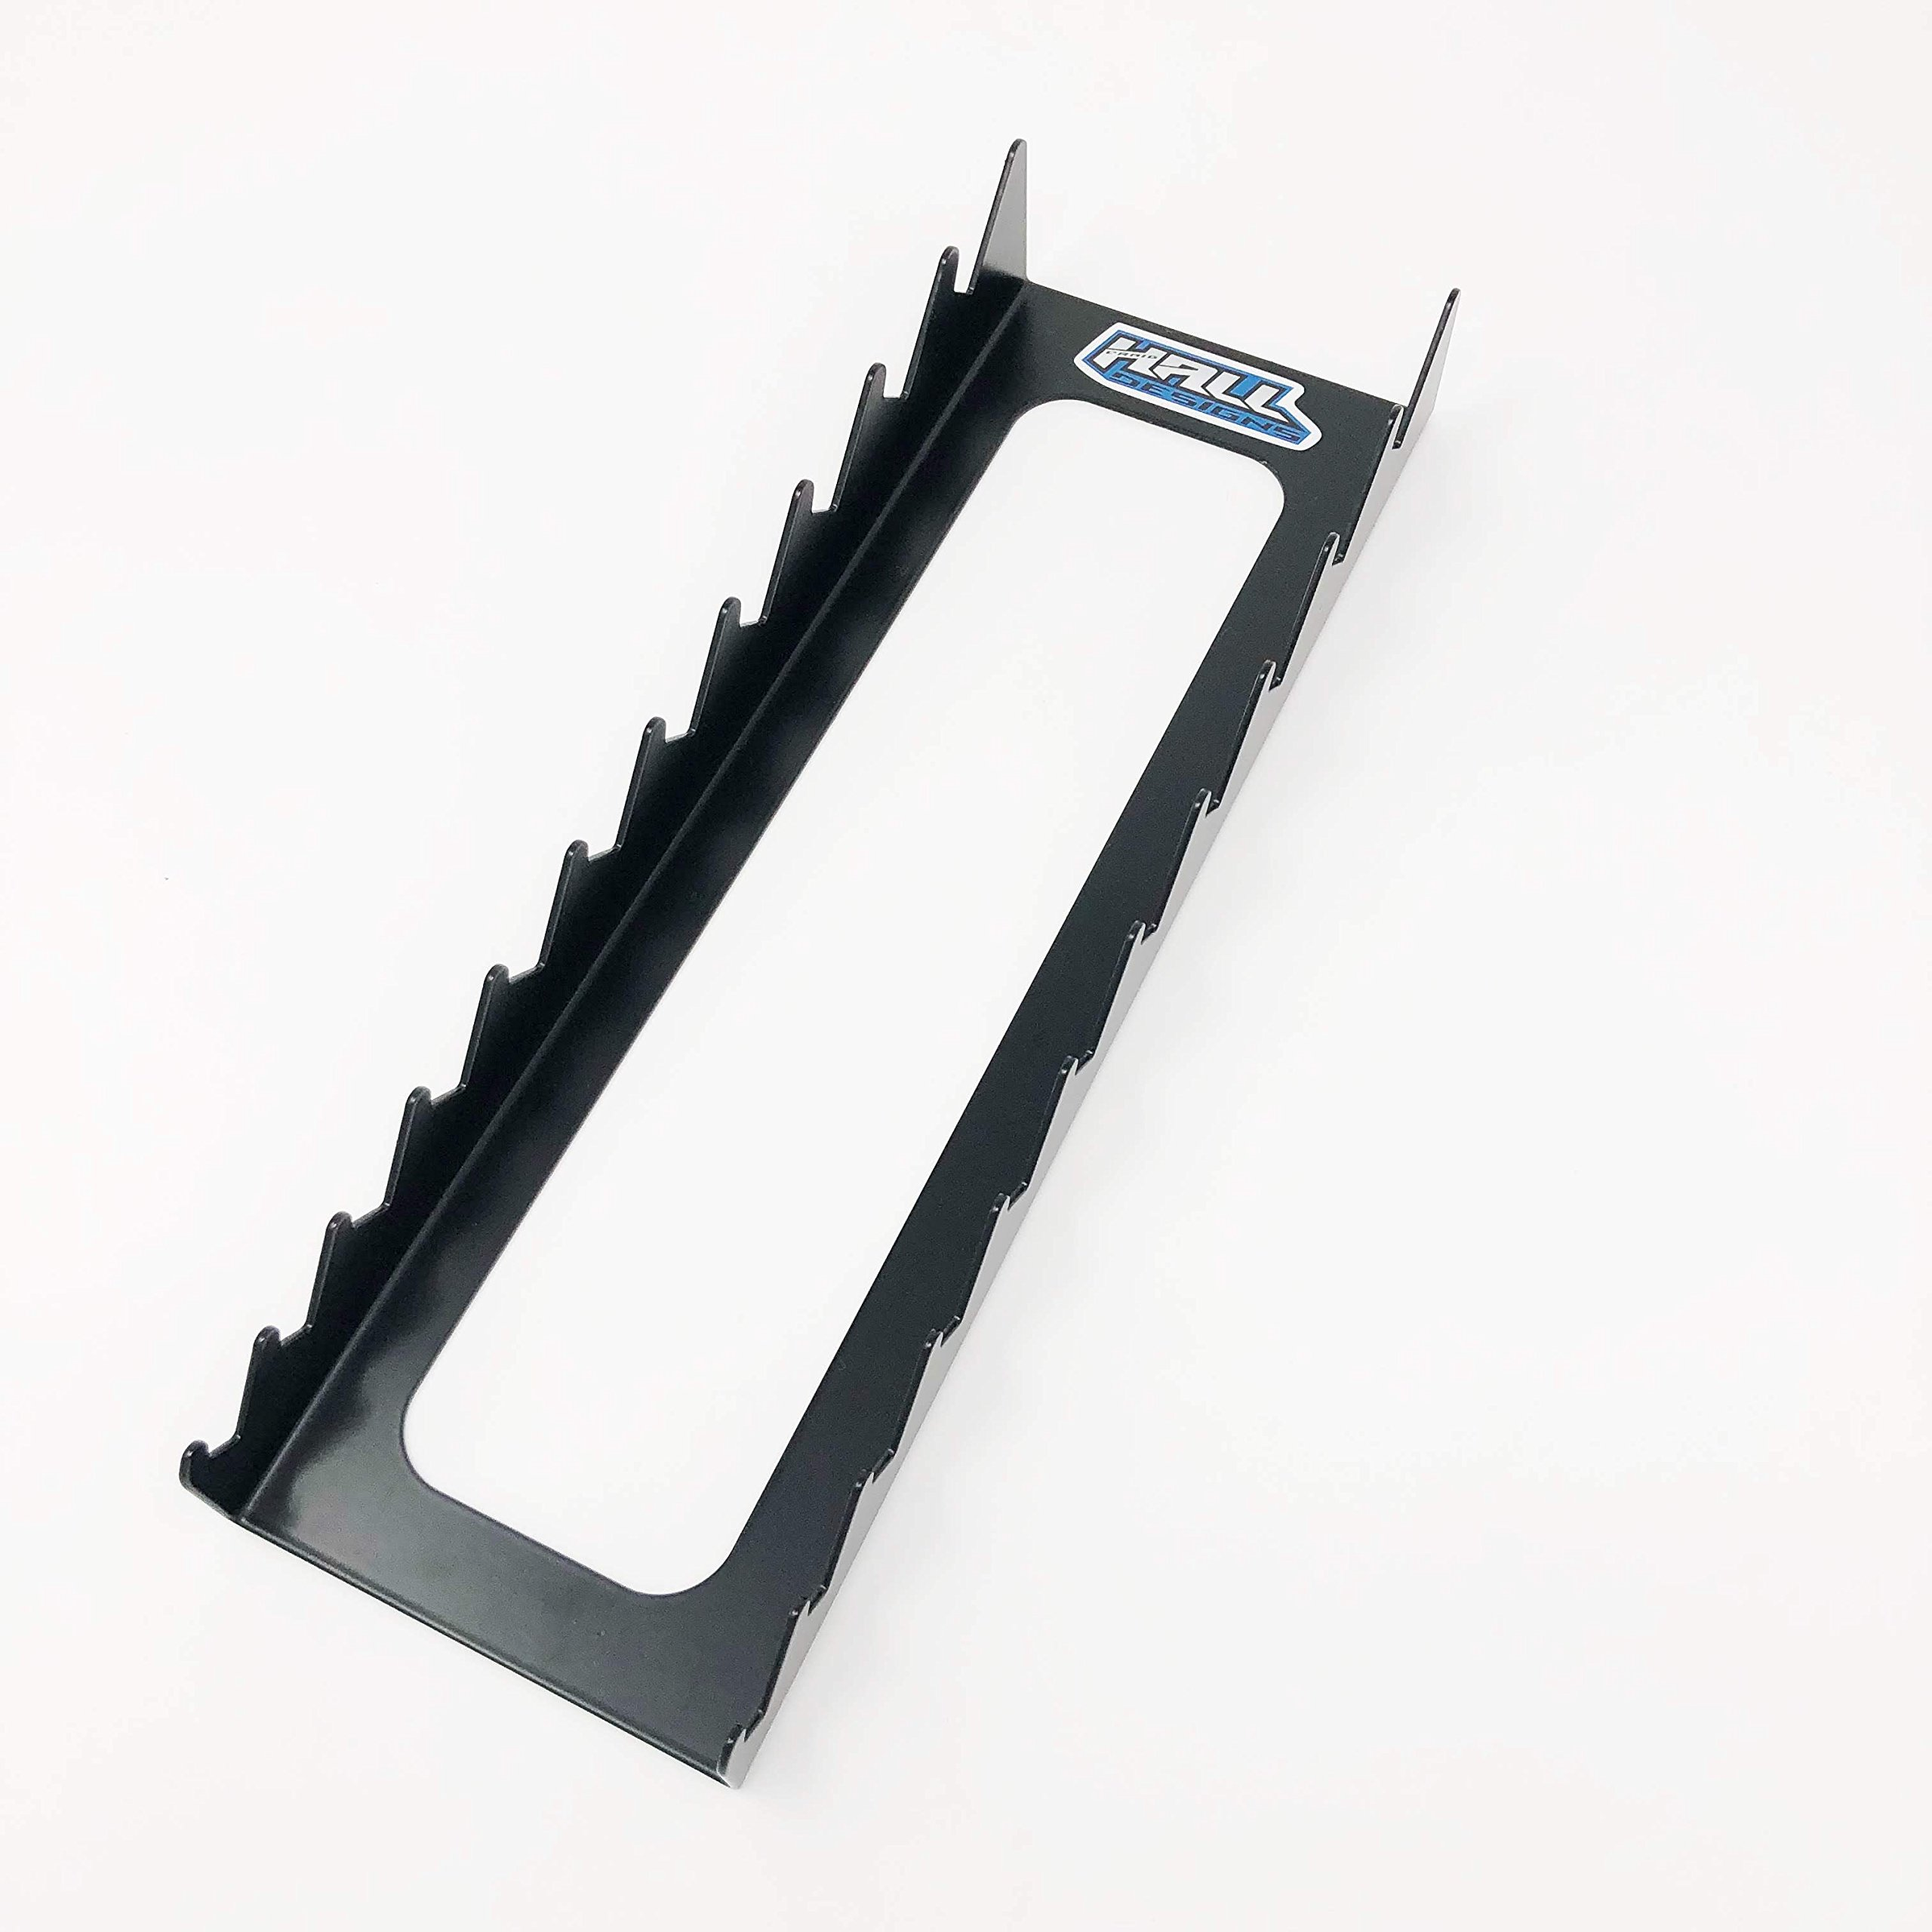 Wrench rack by Hall Designs | 11 slot, short handle, large, steel, Made in USA (BLACK)